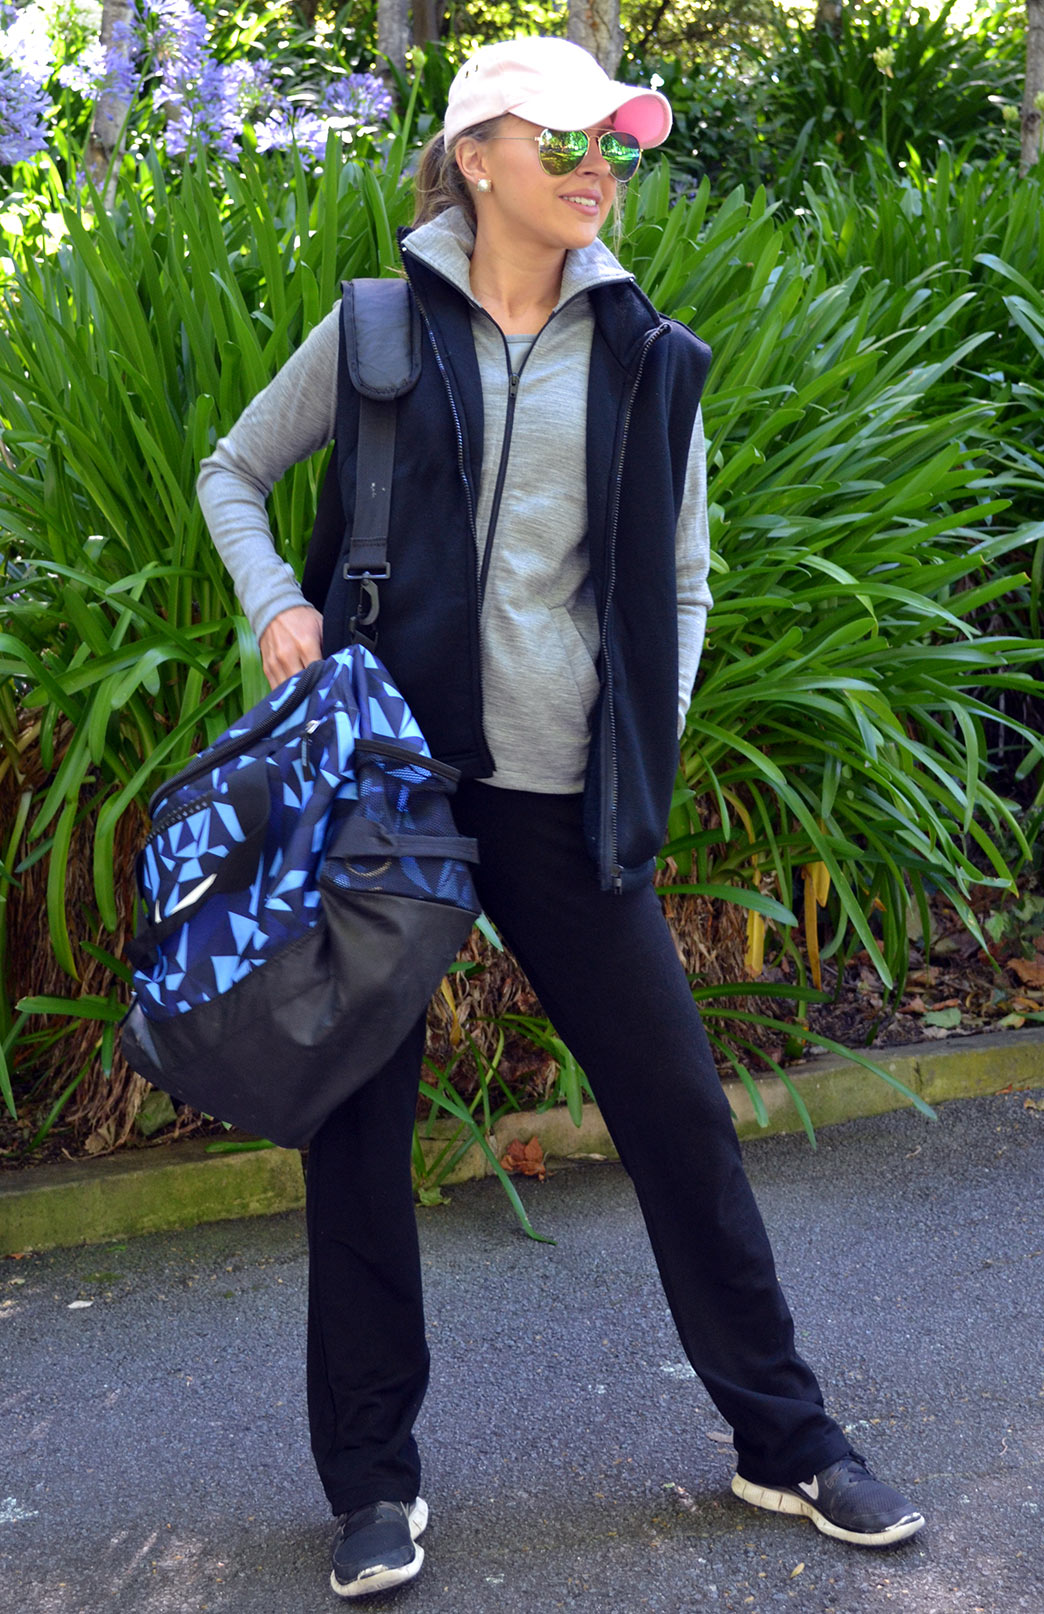 Wool Fleece Vest - Women's Black Wool Fleece Vest with zip fastening and pockets - Smitten Merino Tasmania Australia